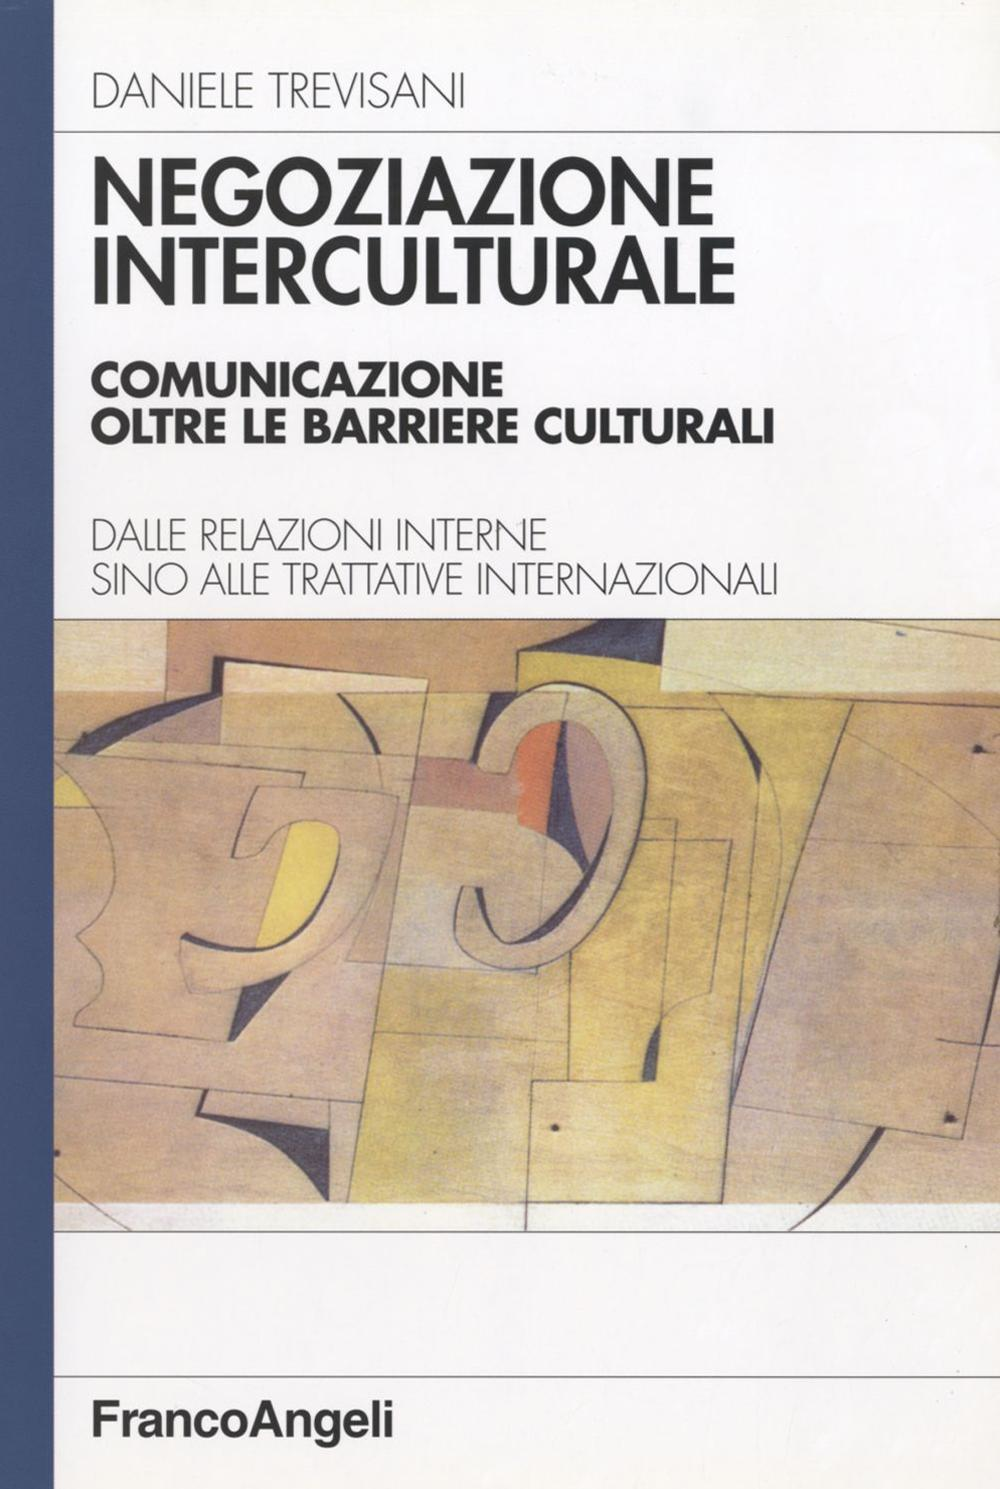 Negoziazione interculturale intercultural negotiation